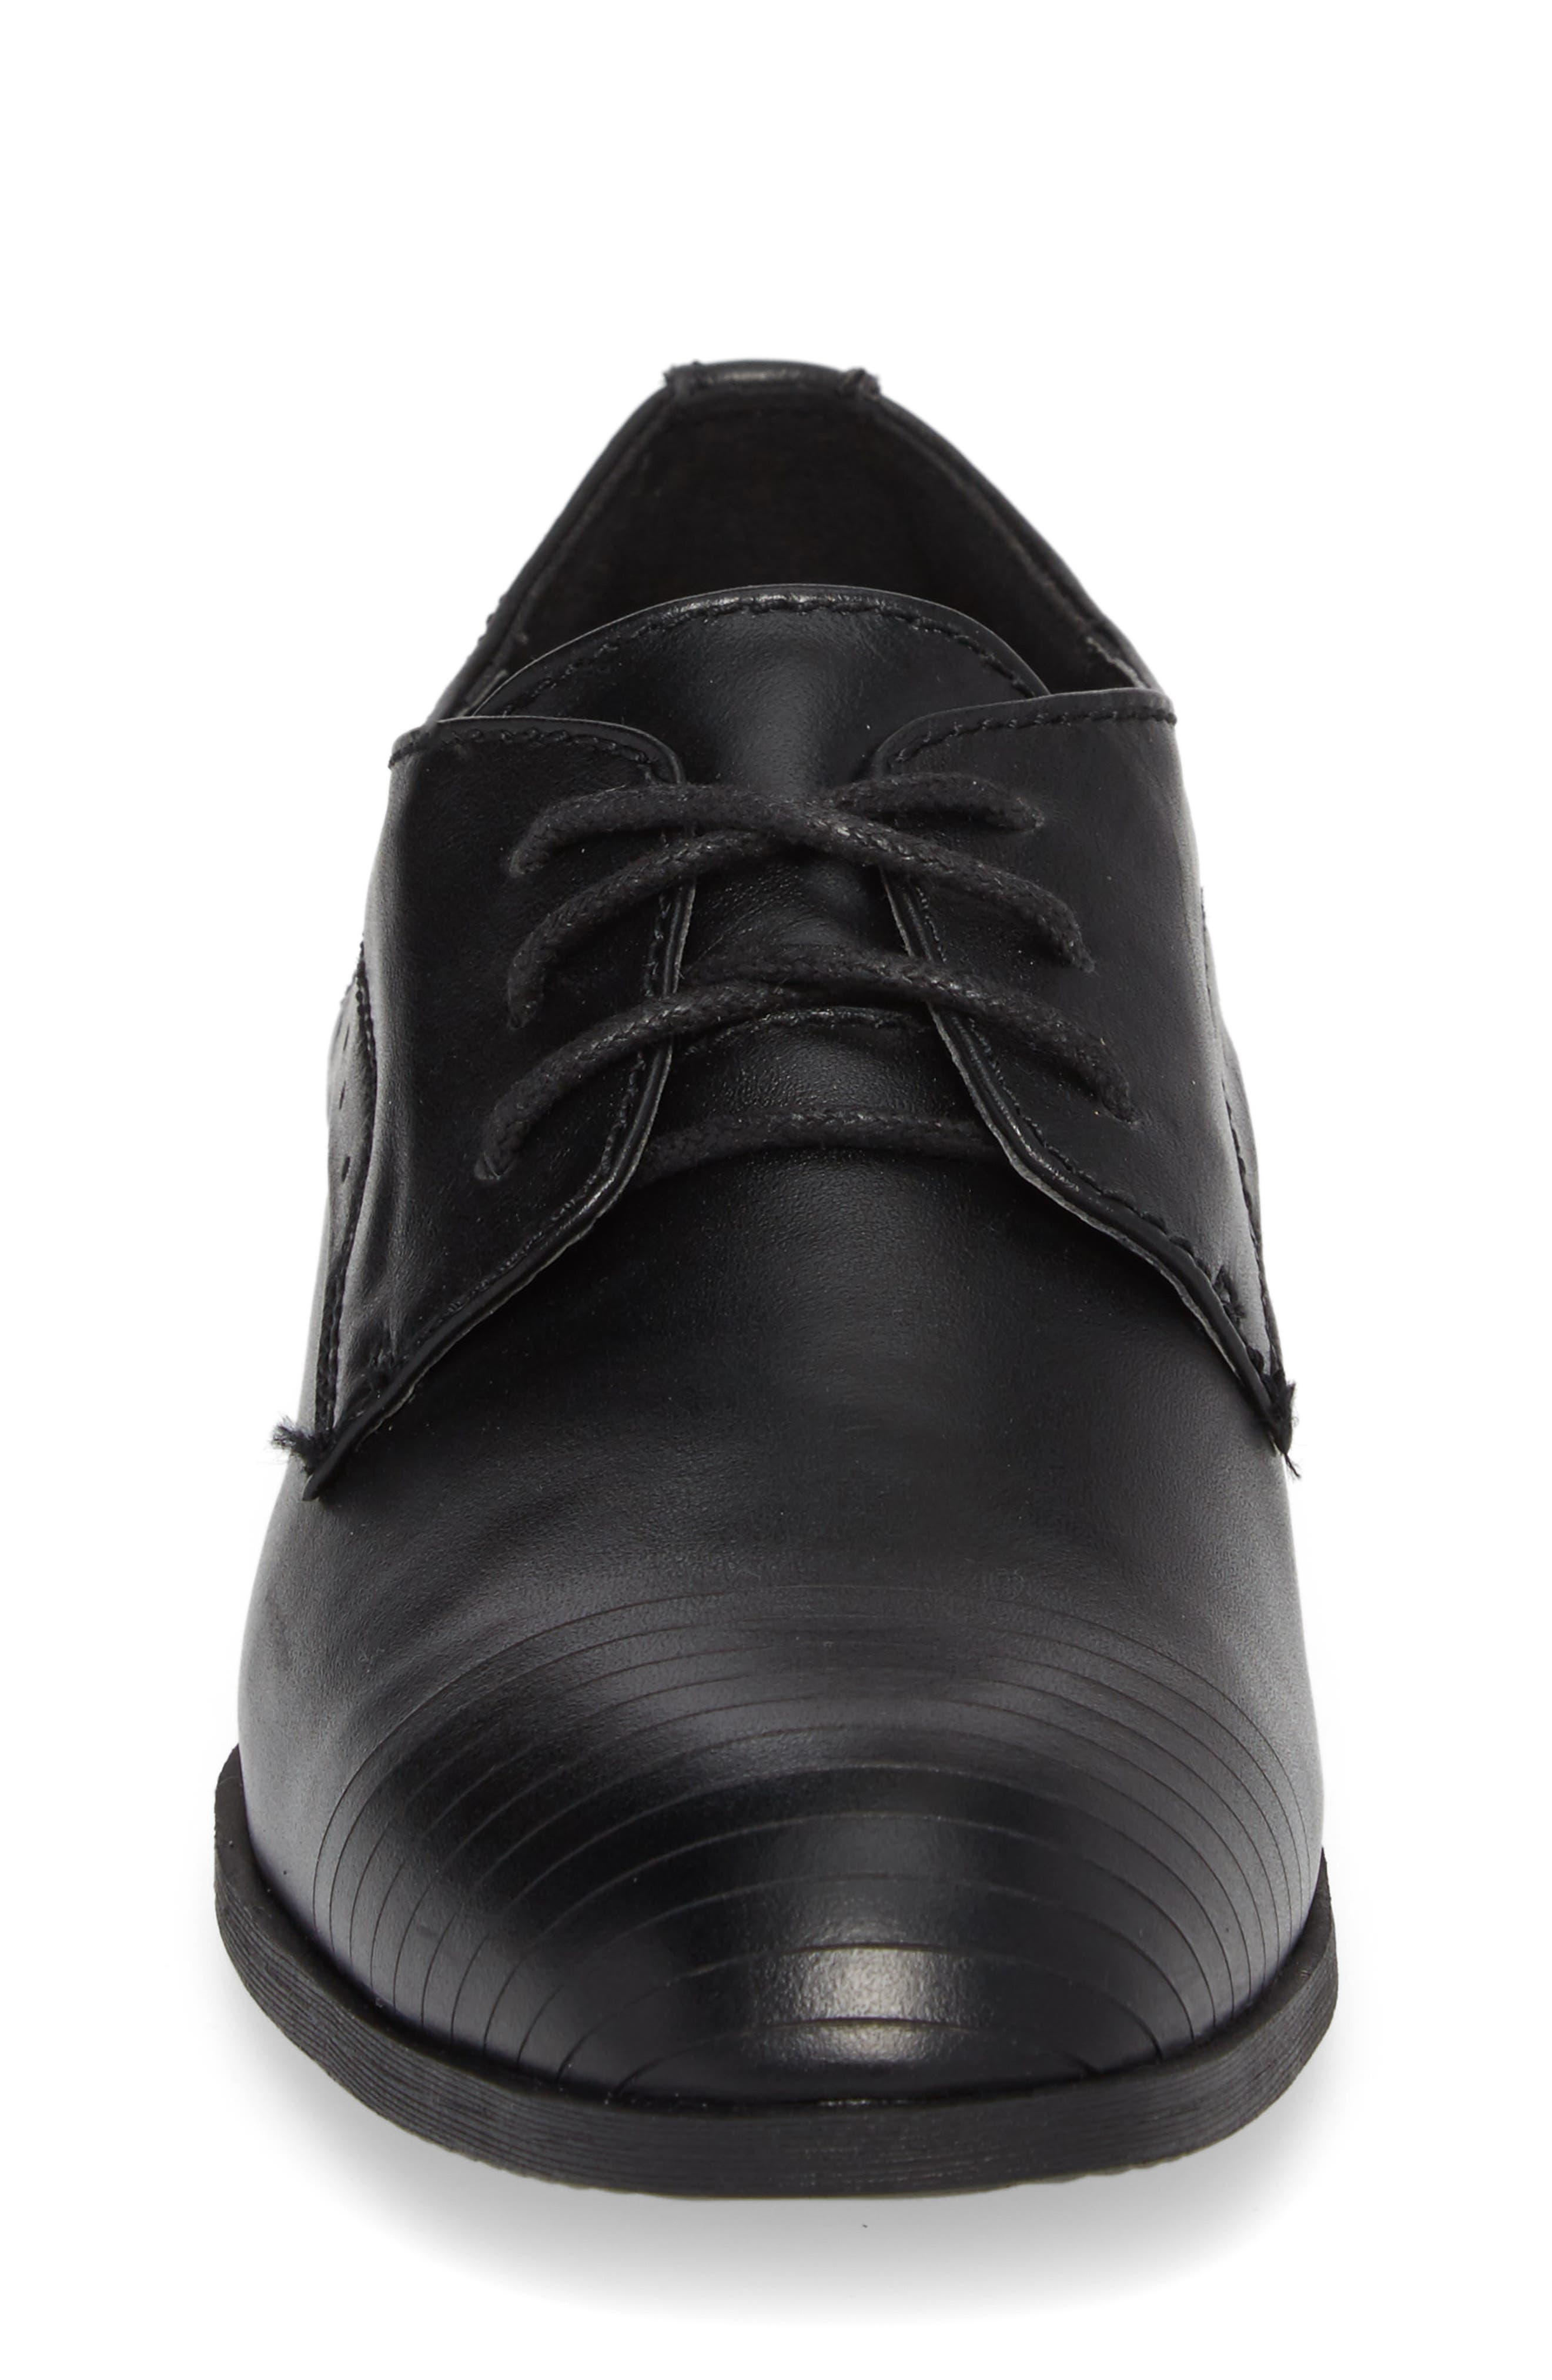 REACTION KENNETH COLE, Straight Line Derby, Alternate thumbnail 4, color, BLACK